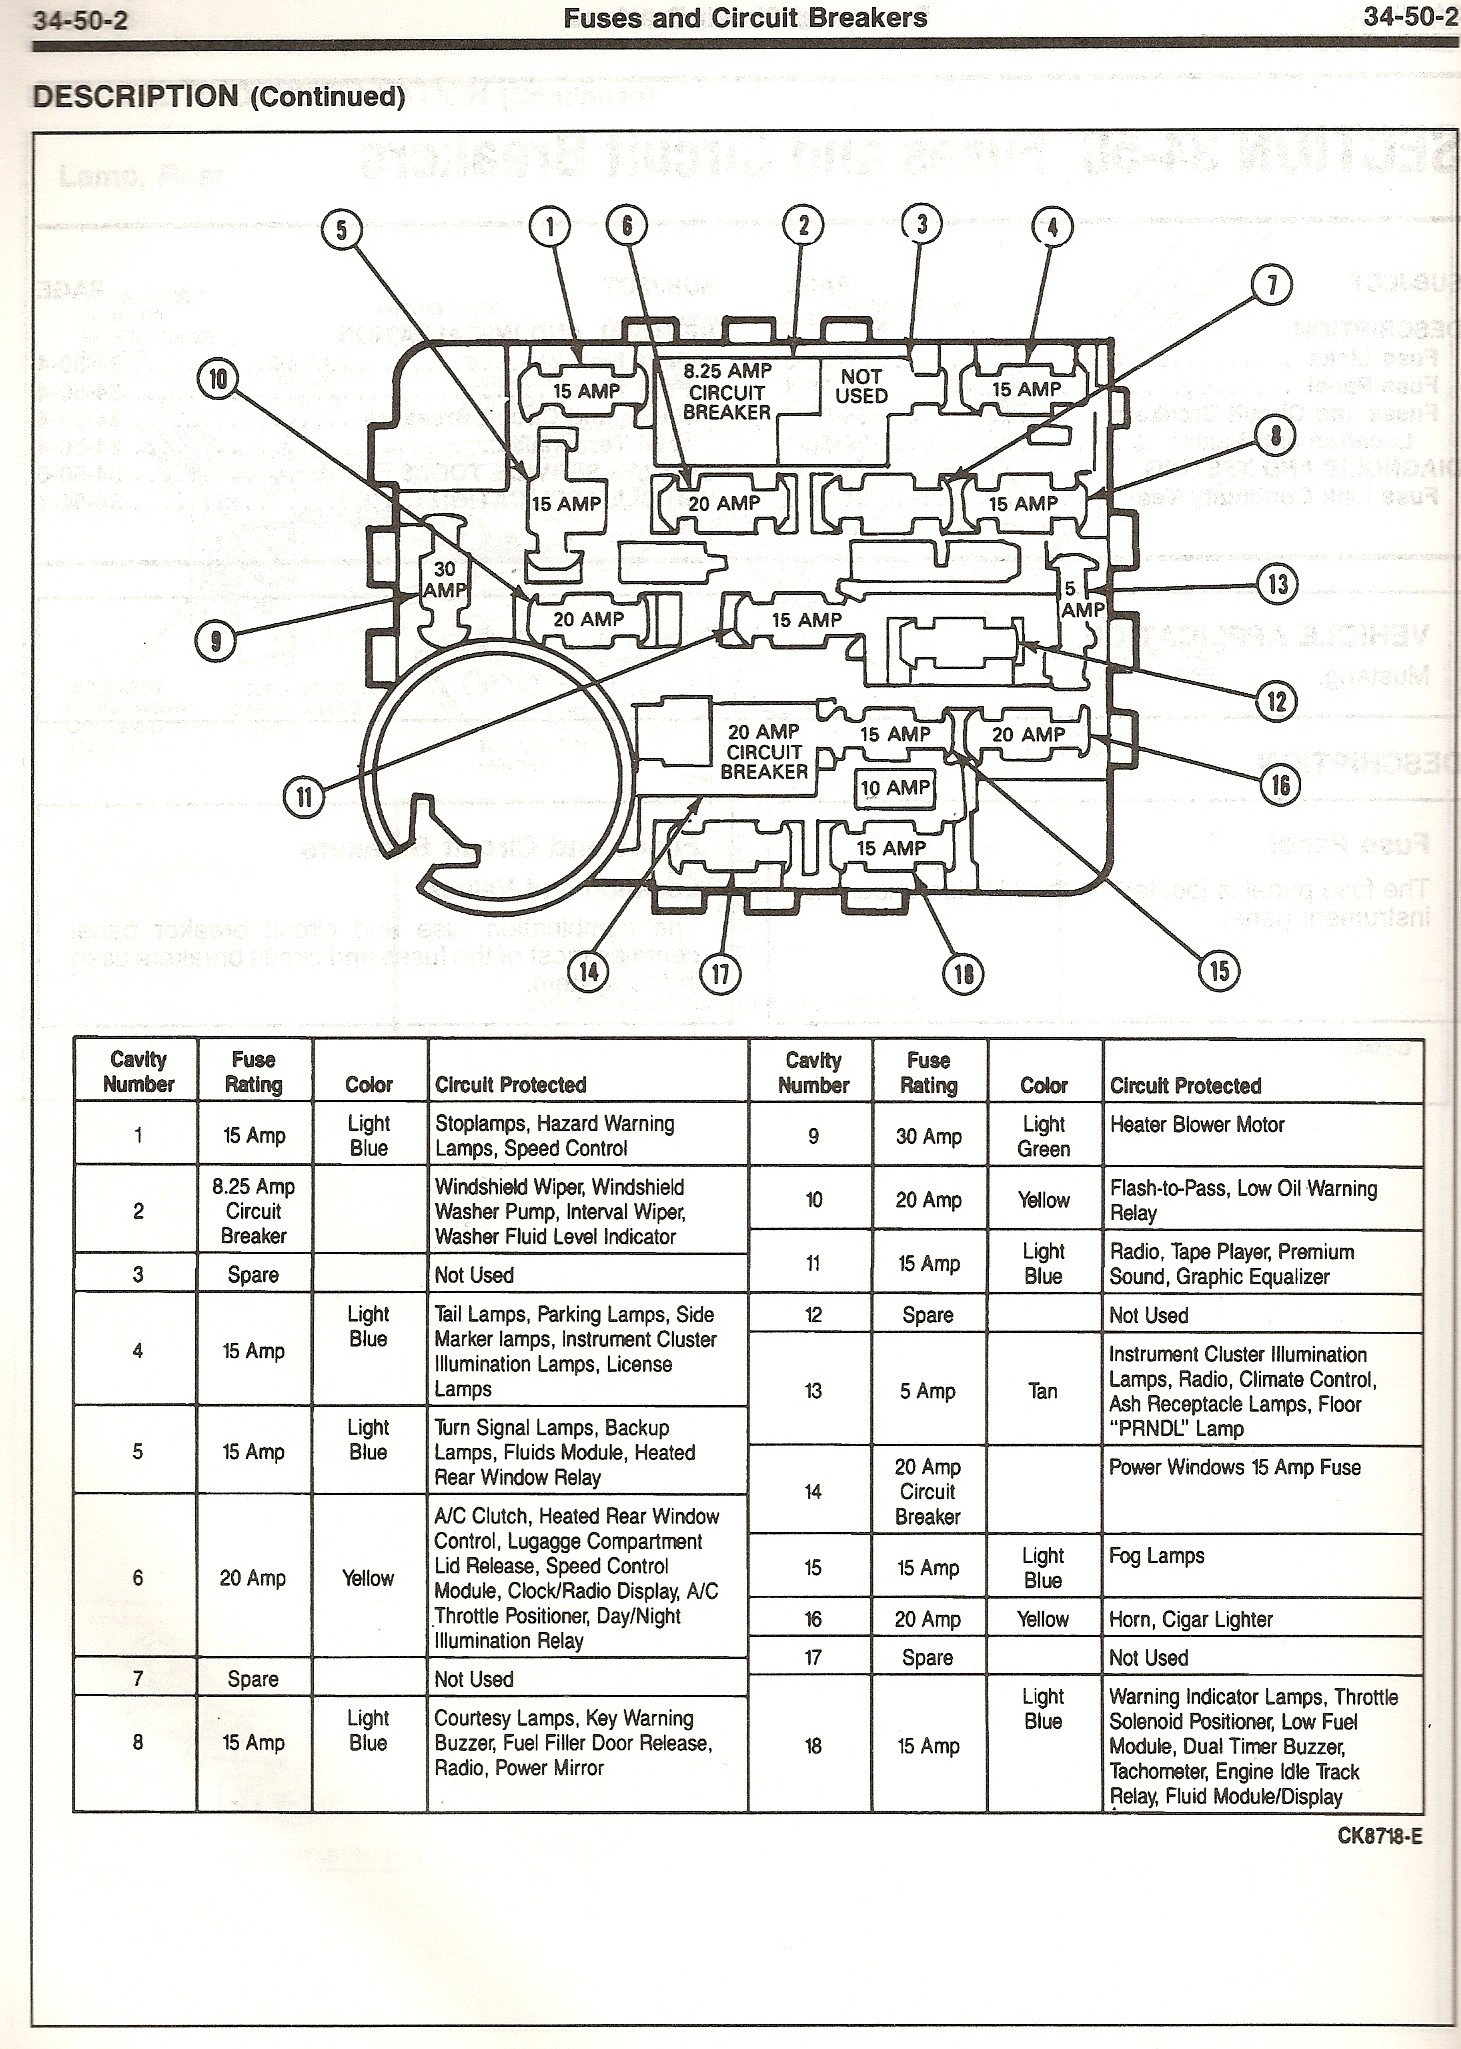 1994 vw jetta fuse box diagram